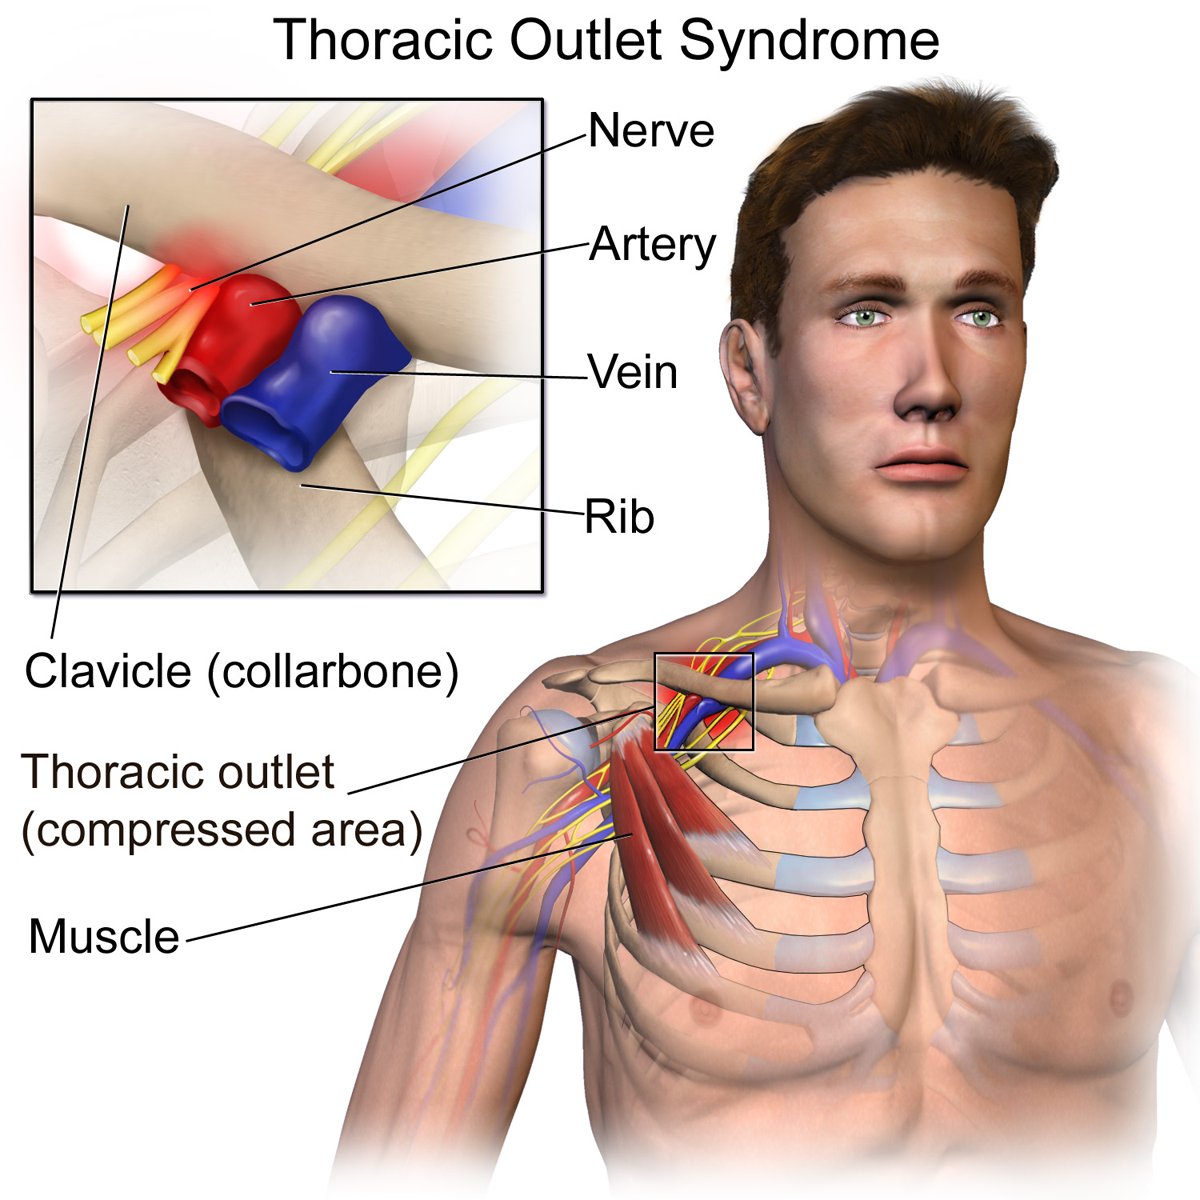 Anatomy Of The Thoracic Outlet And The Thoracic Outlet. Vme Backplane Schematic Web Based Emr Systems. Aragon Veterinary Clinic Teeth Implants Price. Sullivan Tire Falmouth Ma Moving Companies Nc. Home Warranty Las Vegas Sibley Animal Hospital. How To Make Rose Water At Home. Everest College Houston Tx Cheap Stock Photo. Open Source Task Tracking Software. Sammi Jersey Shore Plastic Surgery